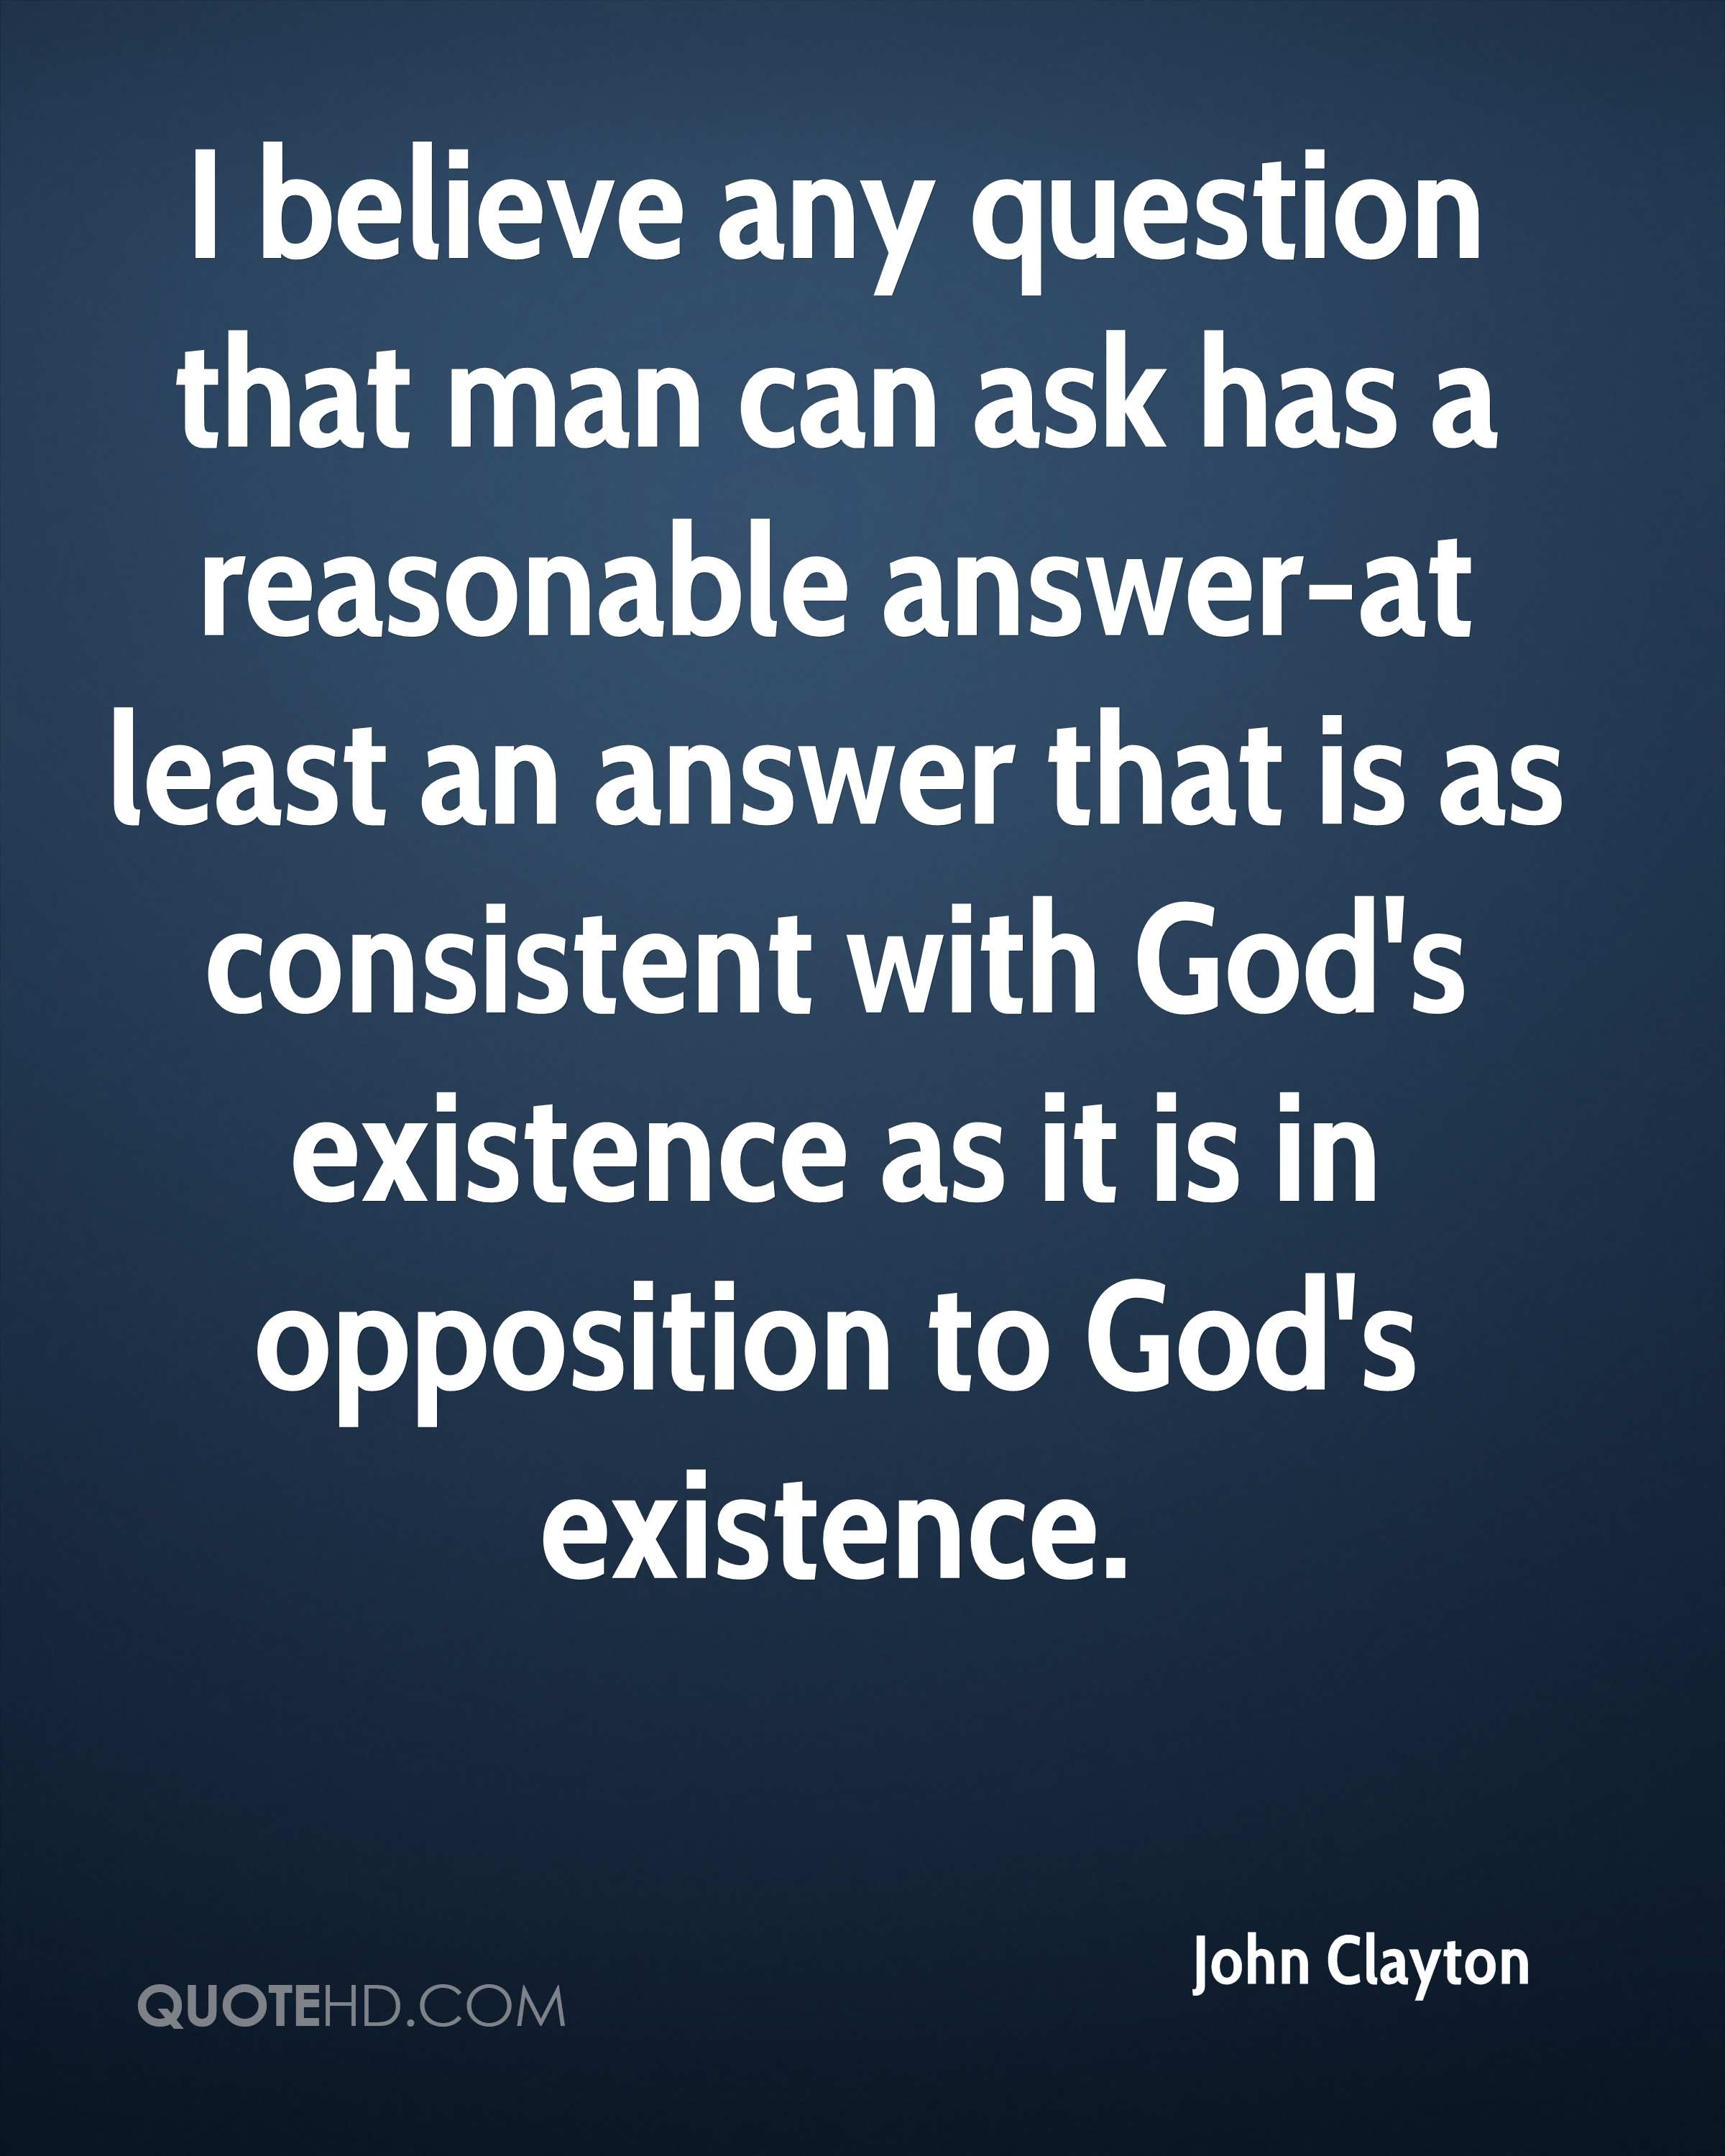 I believe any question that man can ask has a reasonable answer-at least an answer that is as consistent with God's existence as it is in opposition to God's existence.